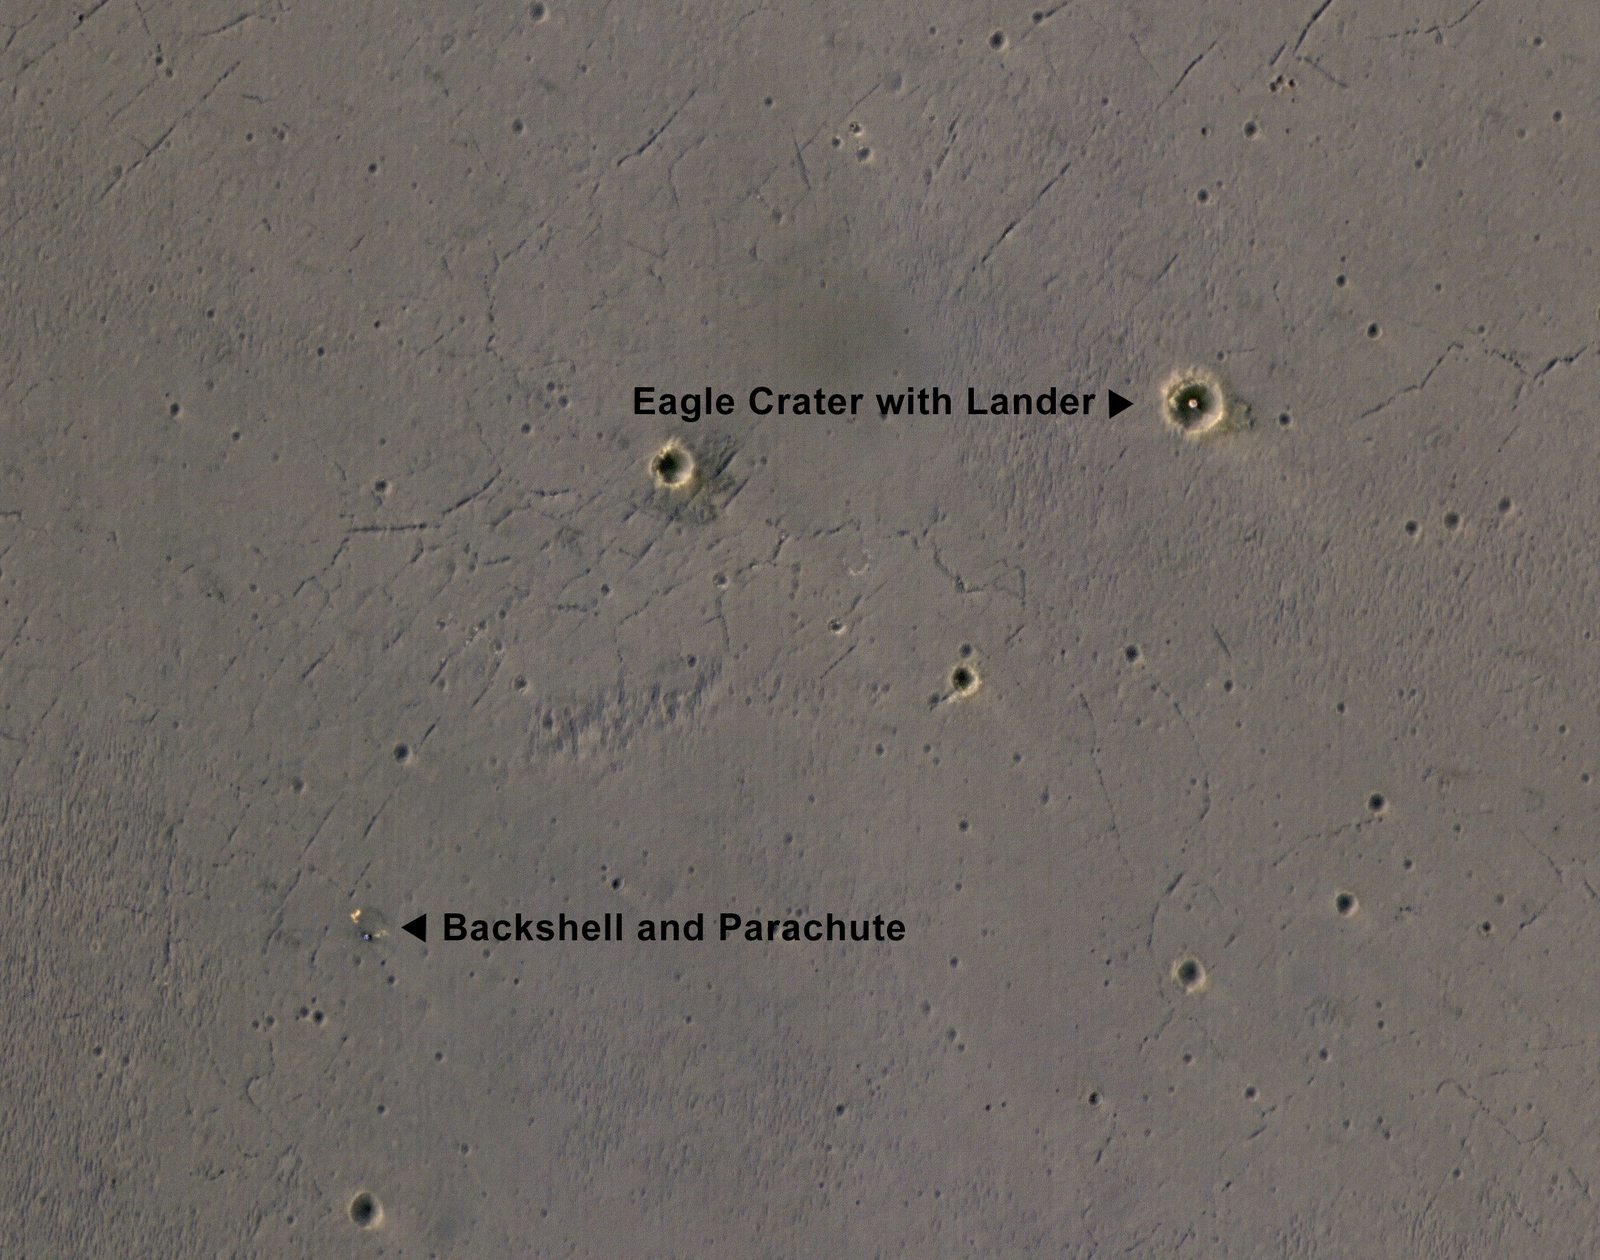 Rover's Landing Hardware at Eagle Crater, Mars (Annotated)